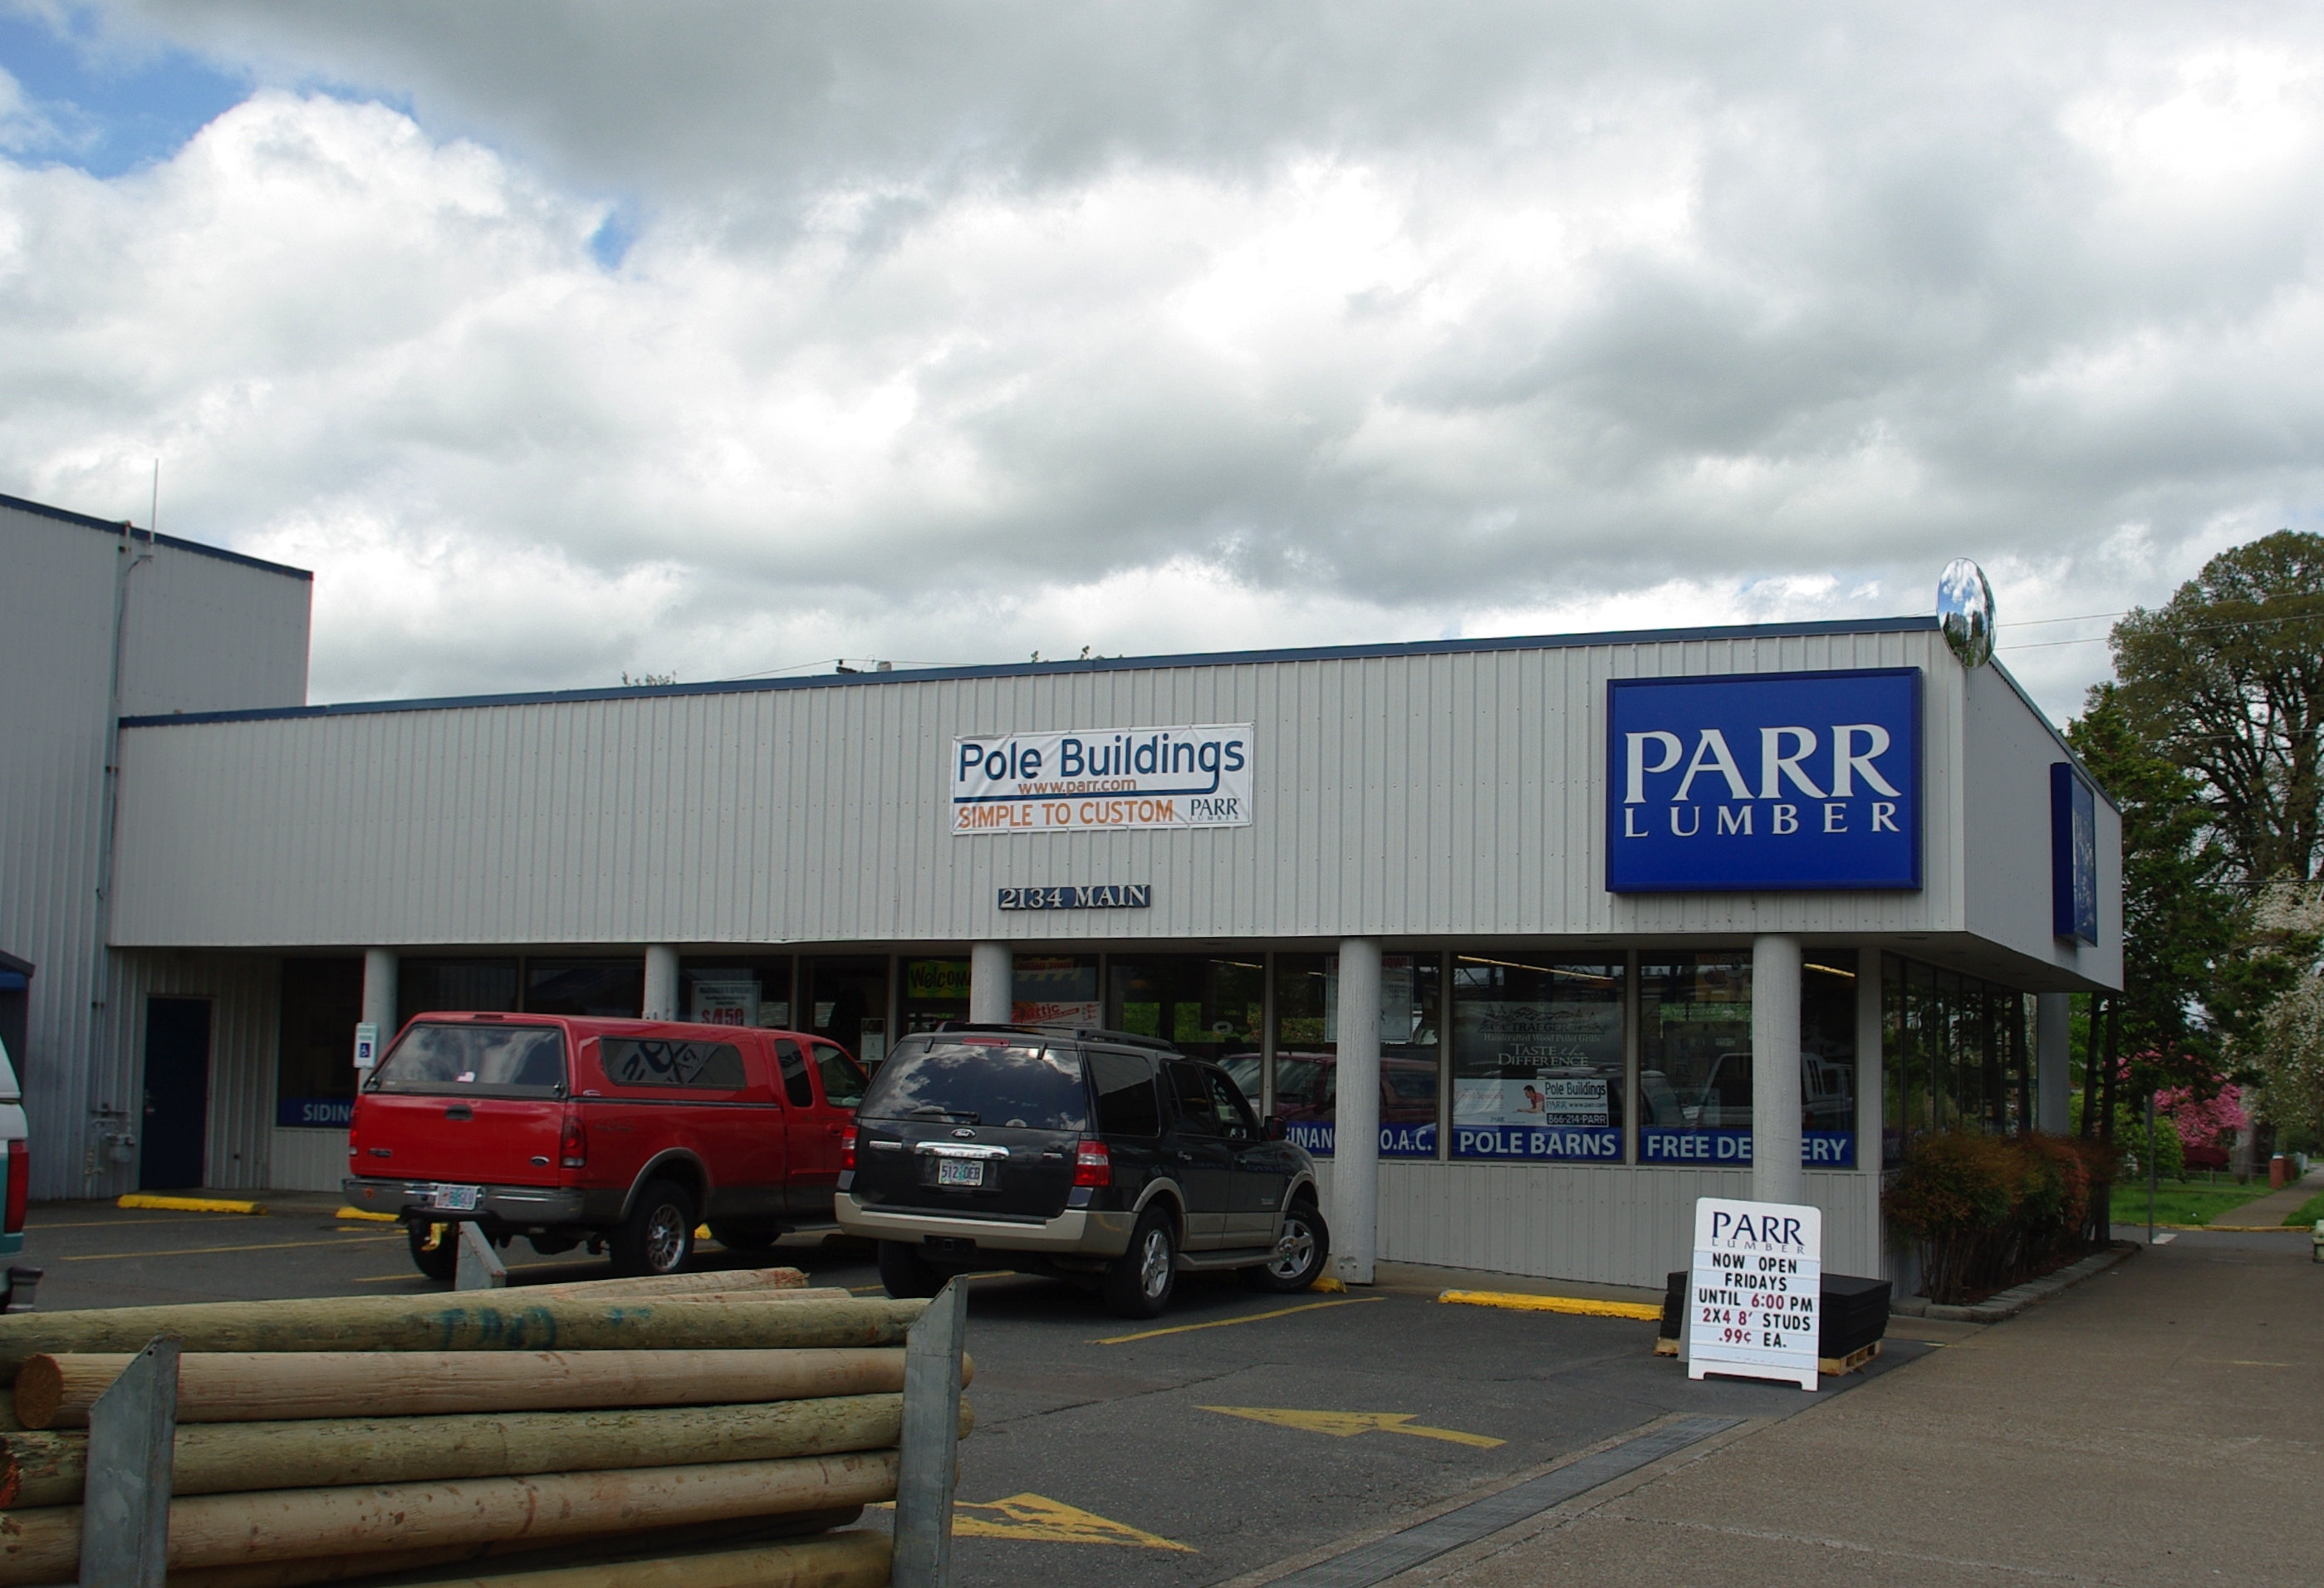 Parr lumber wikiwand for Parr lumber